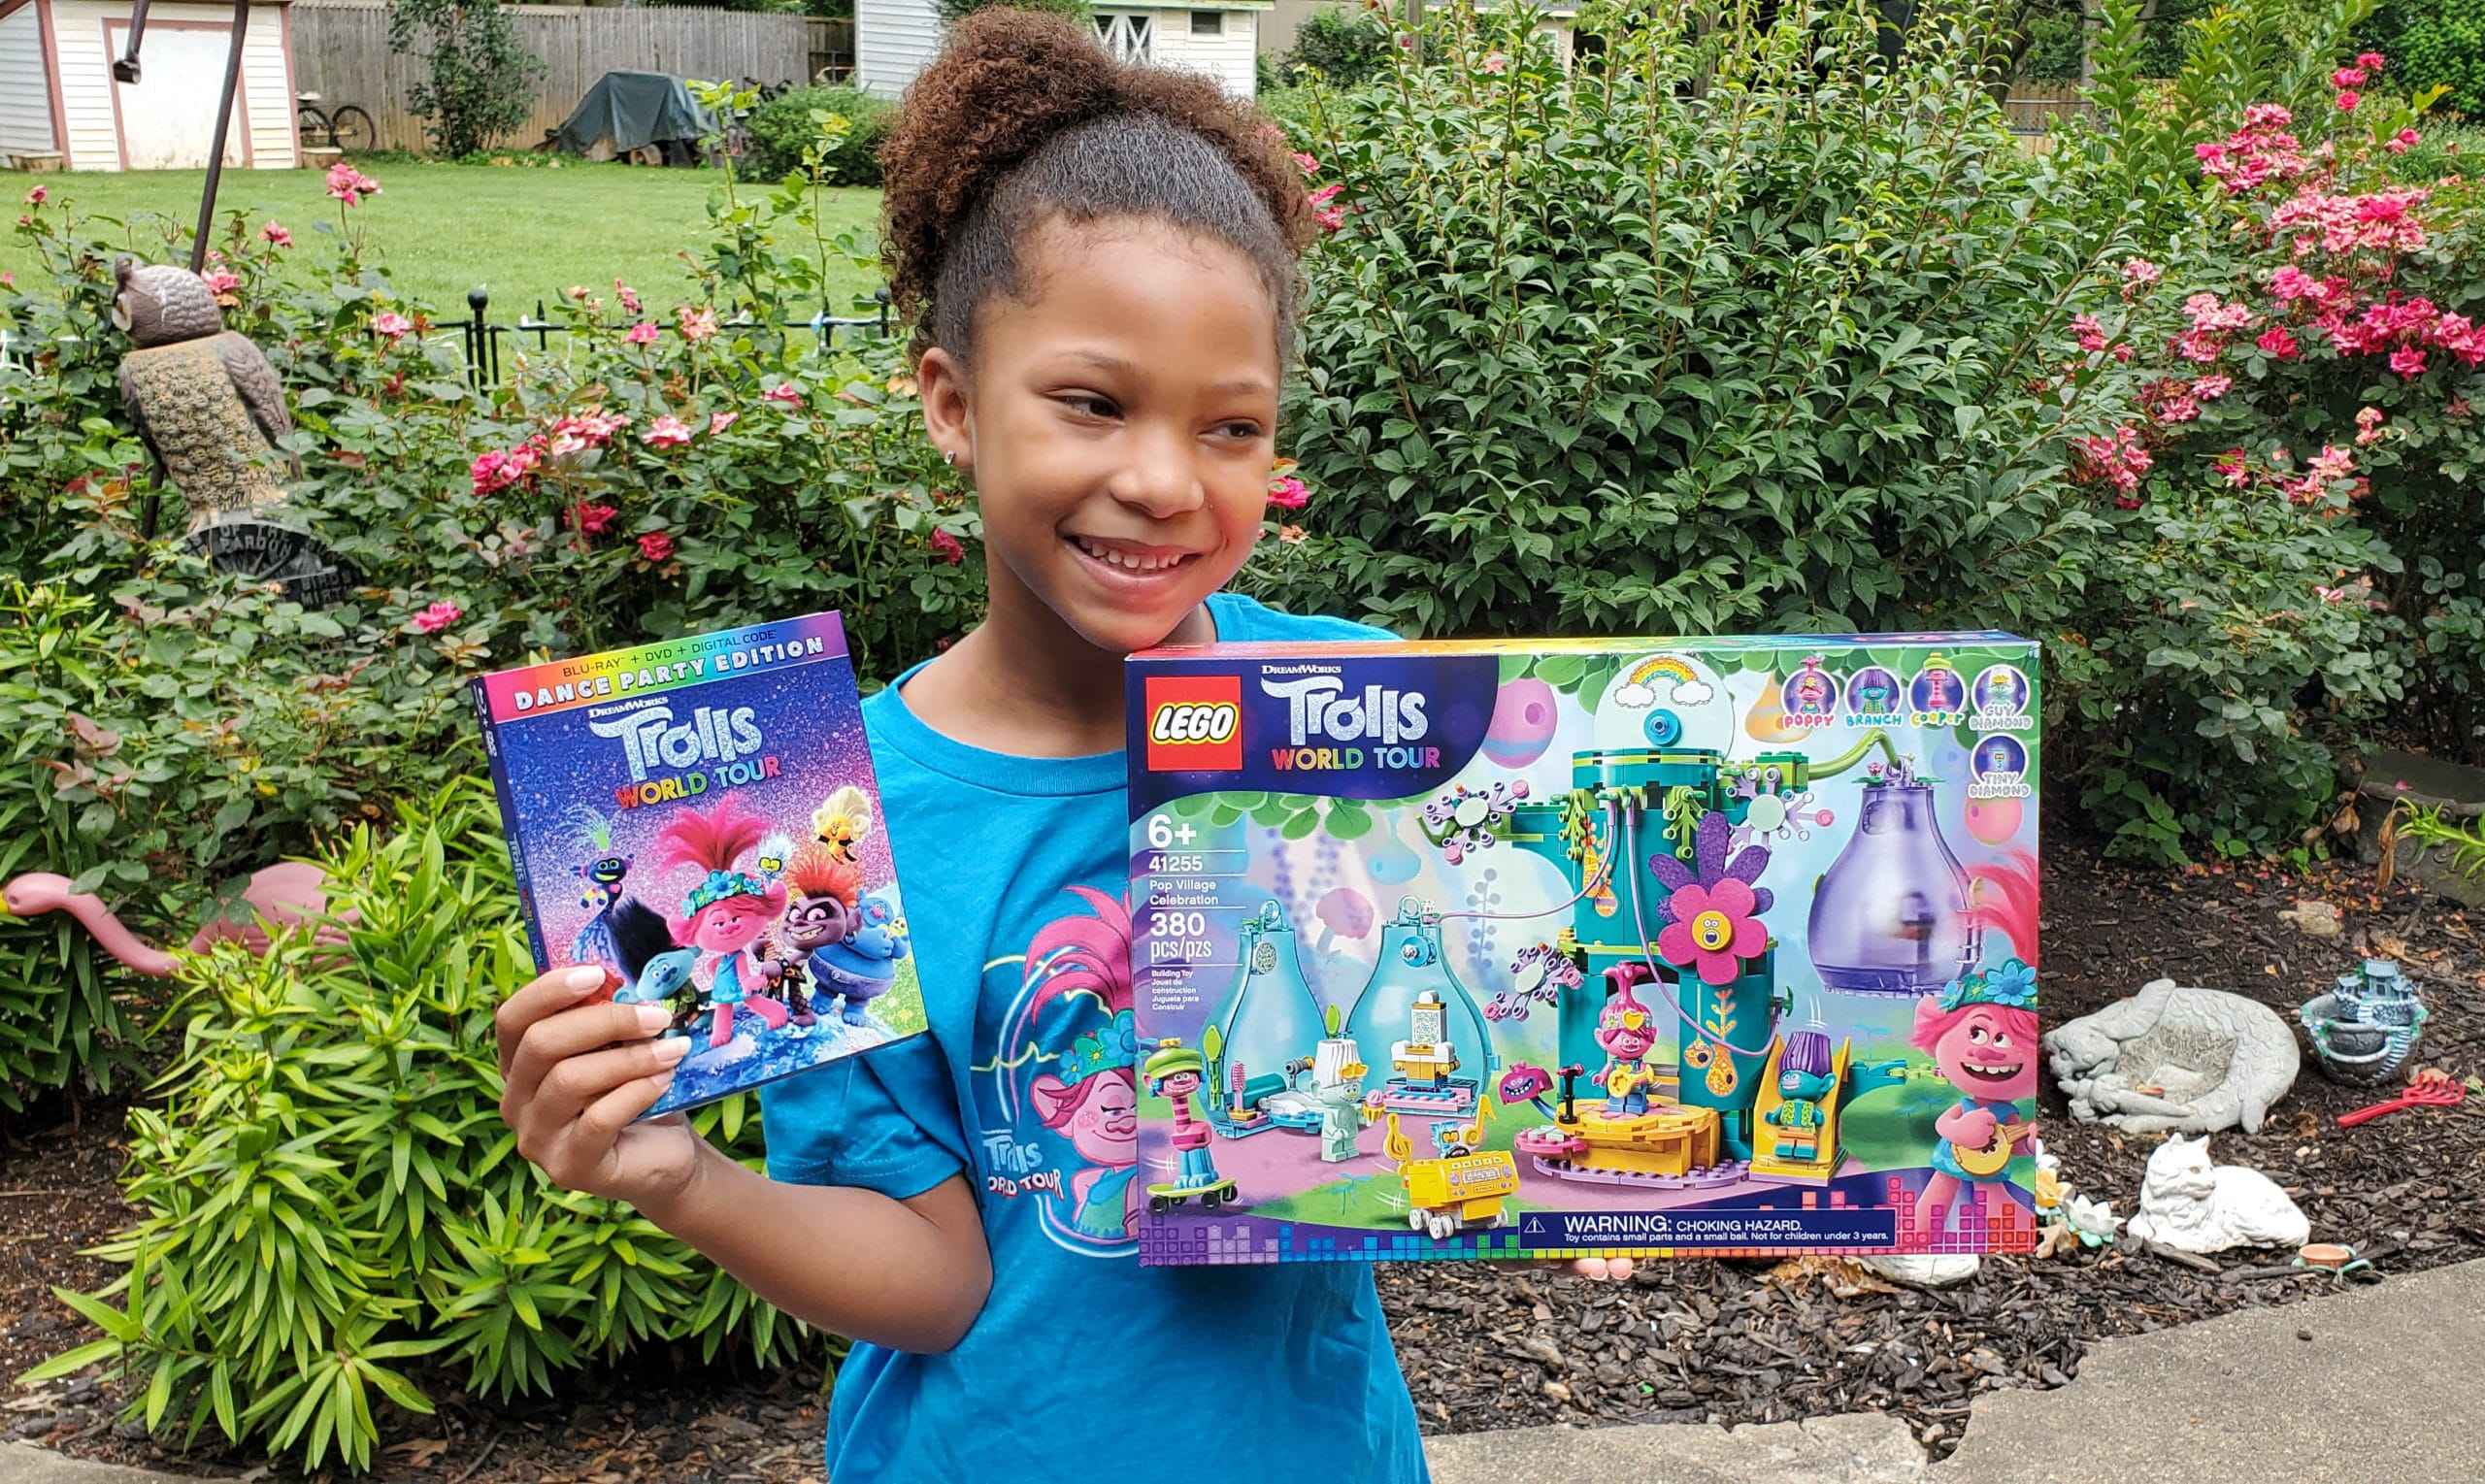 Trolls World Tour LEGOS DVD. View a special Trolls World Tour Unboxing in honor of the release of the Dance Party Edition, available on Digital 4K, Blu-ray, and DVD today!